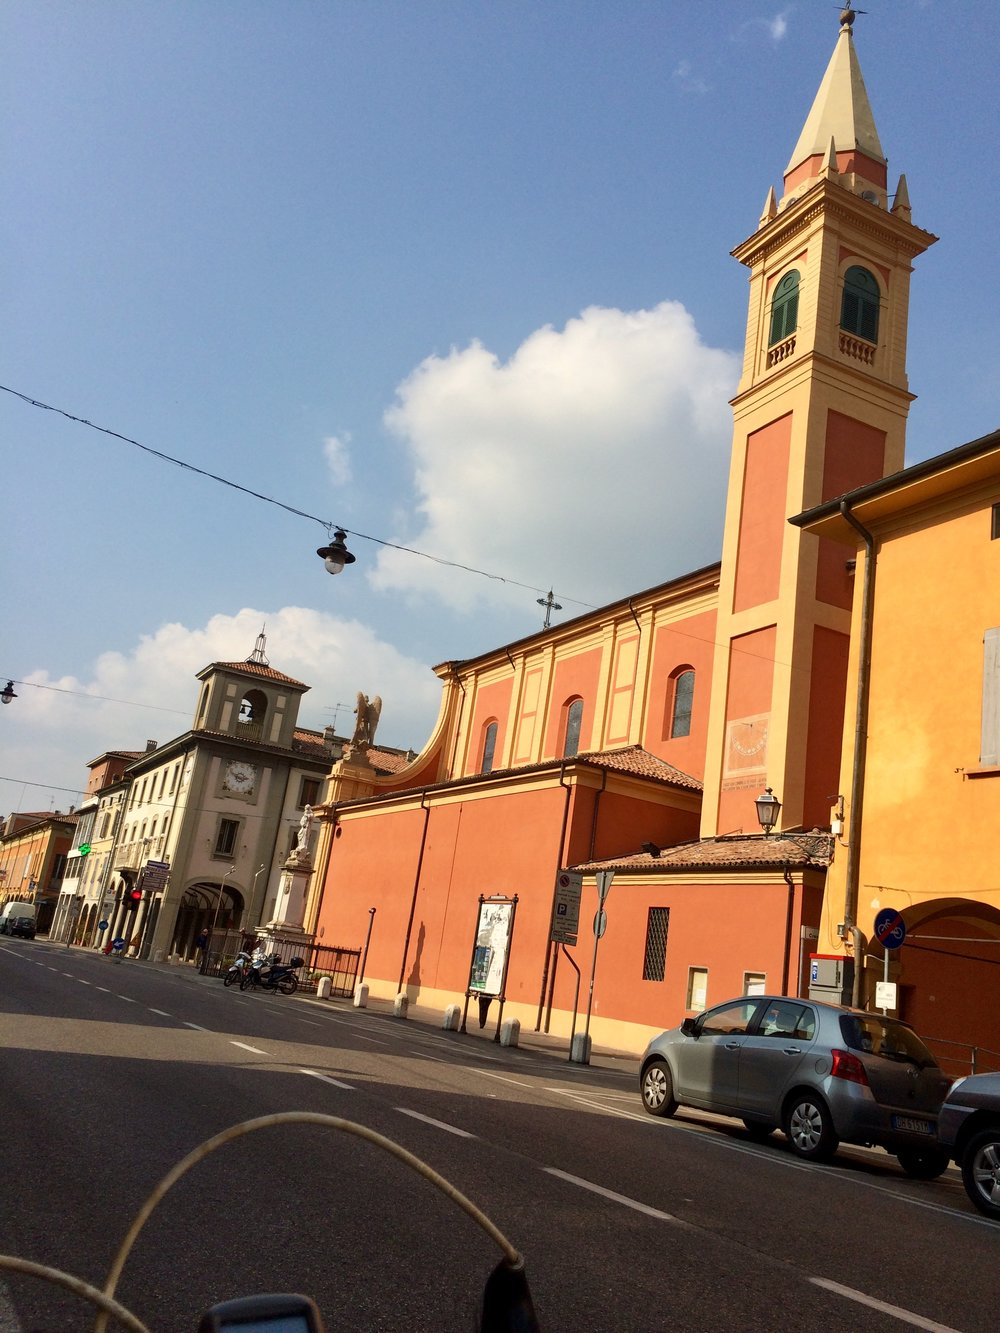 Pretty town of Castelfranco Emilia- forced the GPS to go this way